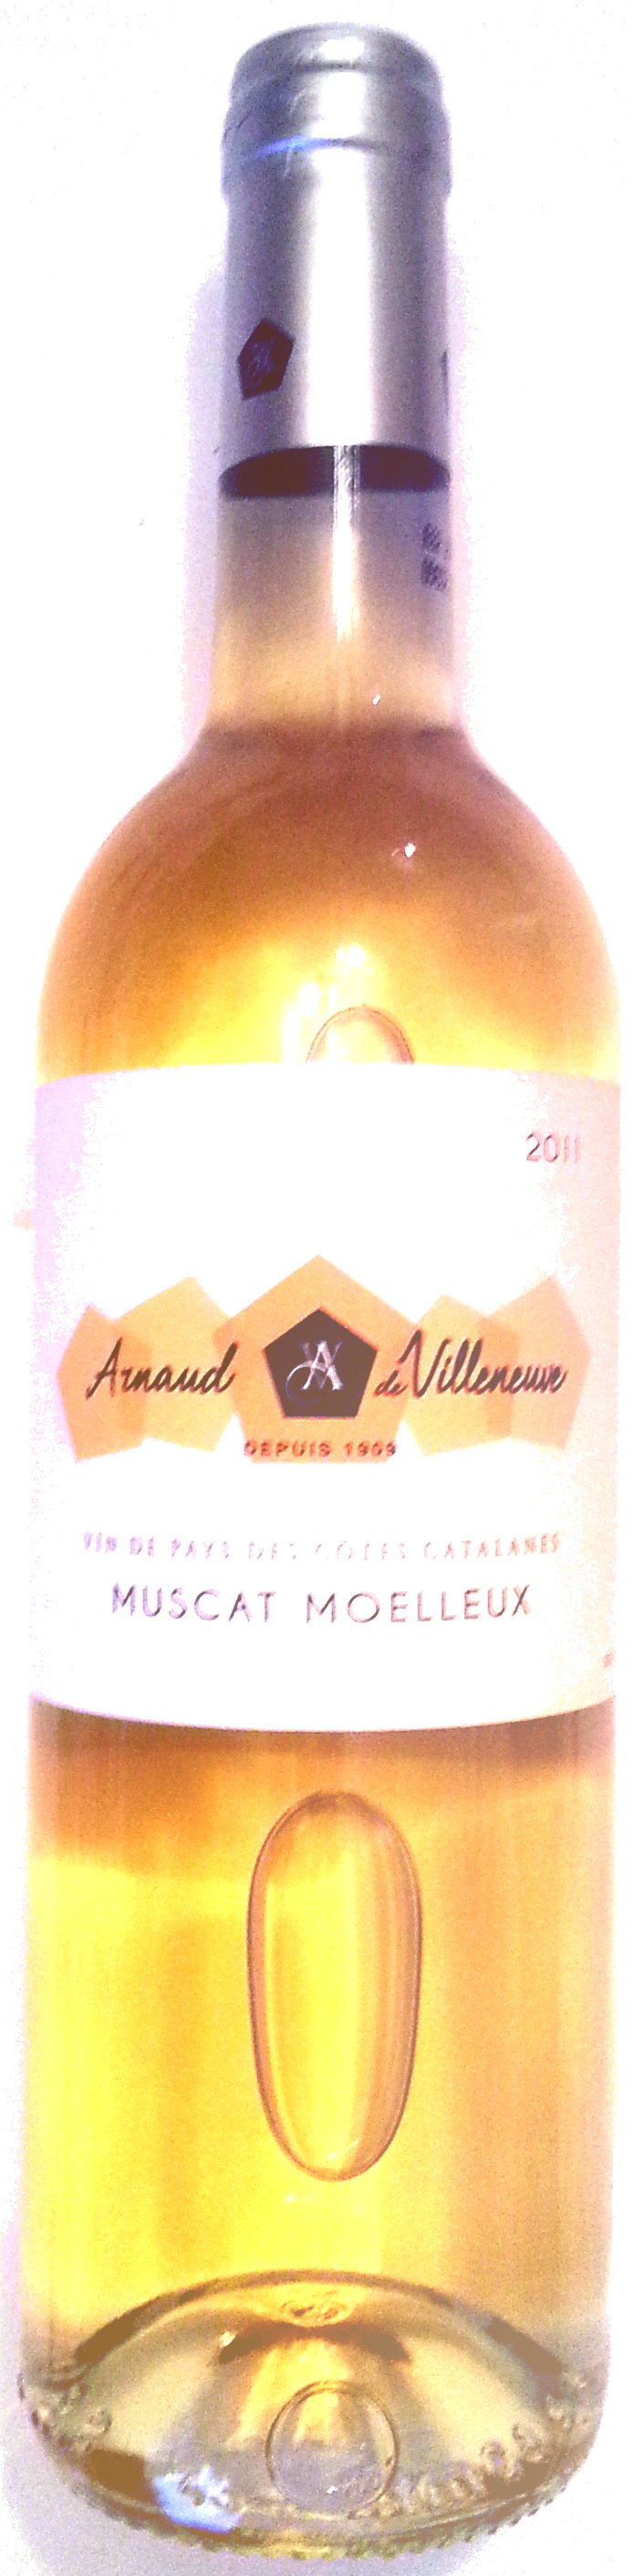 Muscat moelleux 2011 - Product